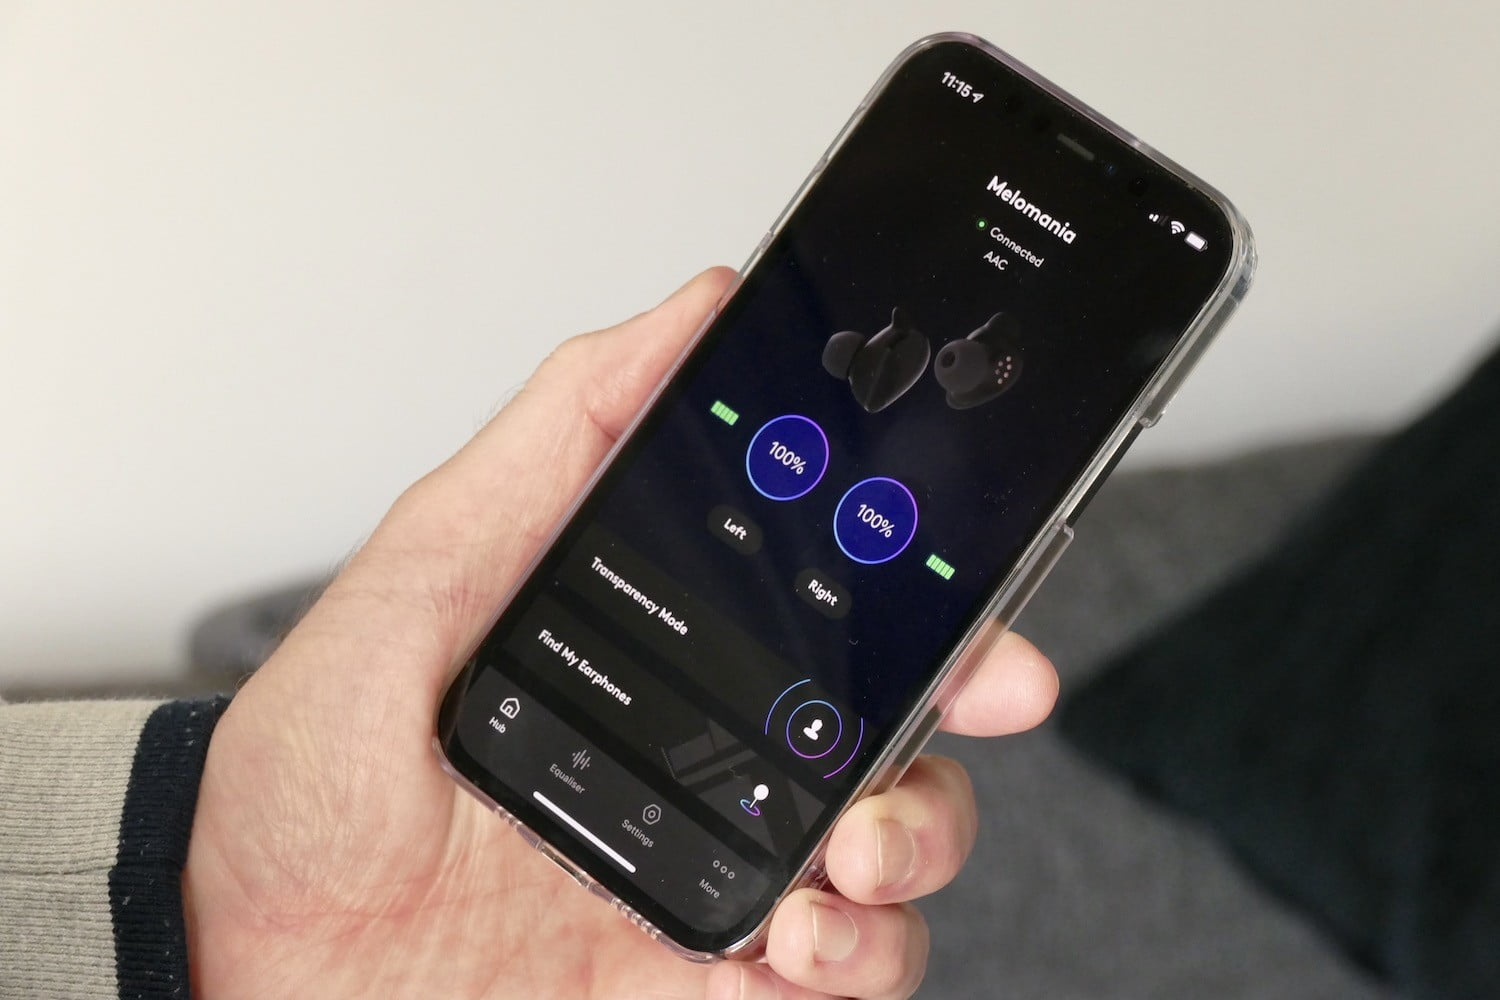 cambridge audio melomania touch review app battery life